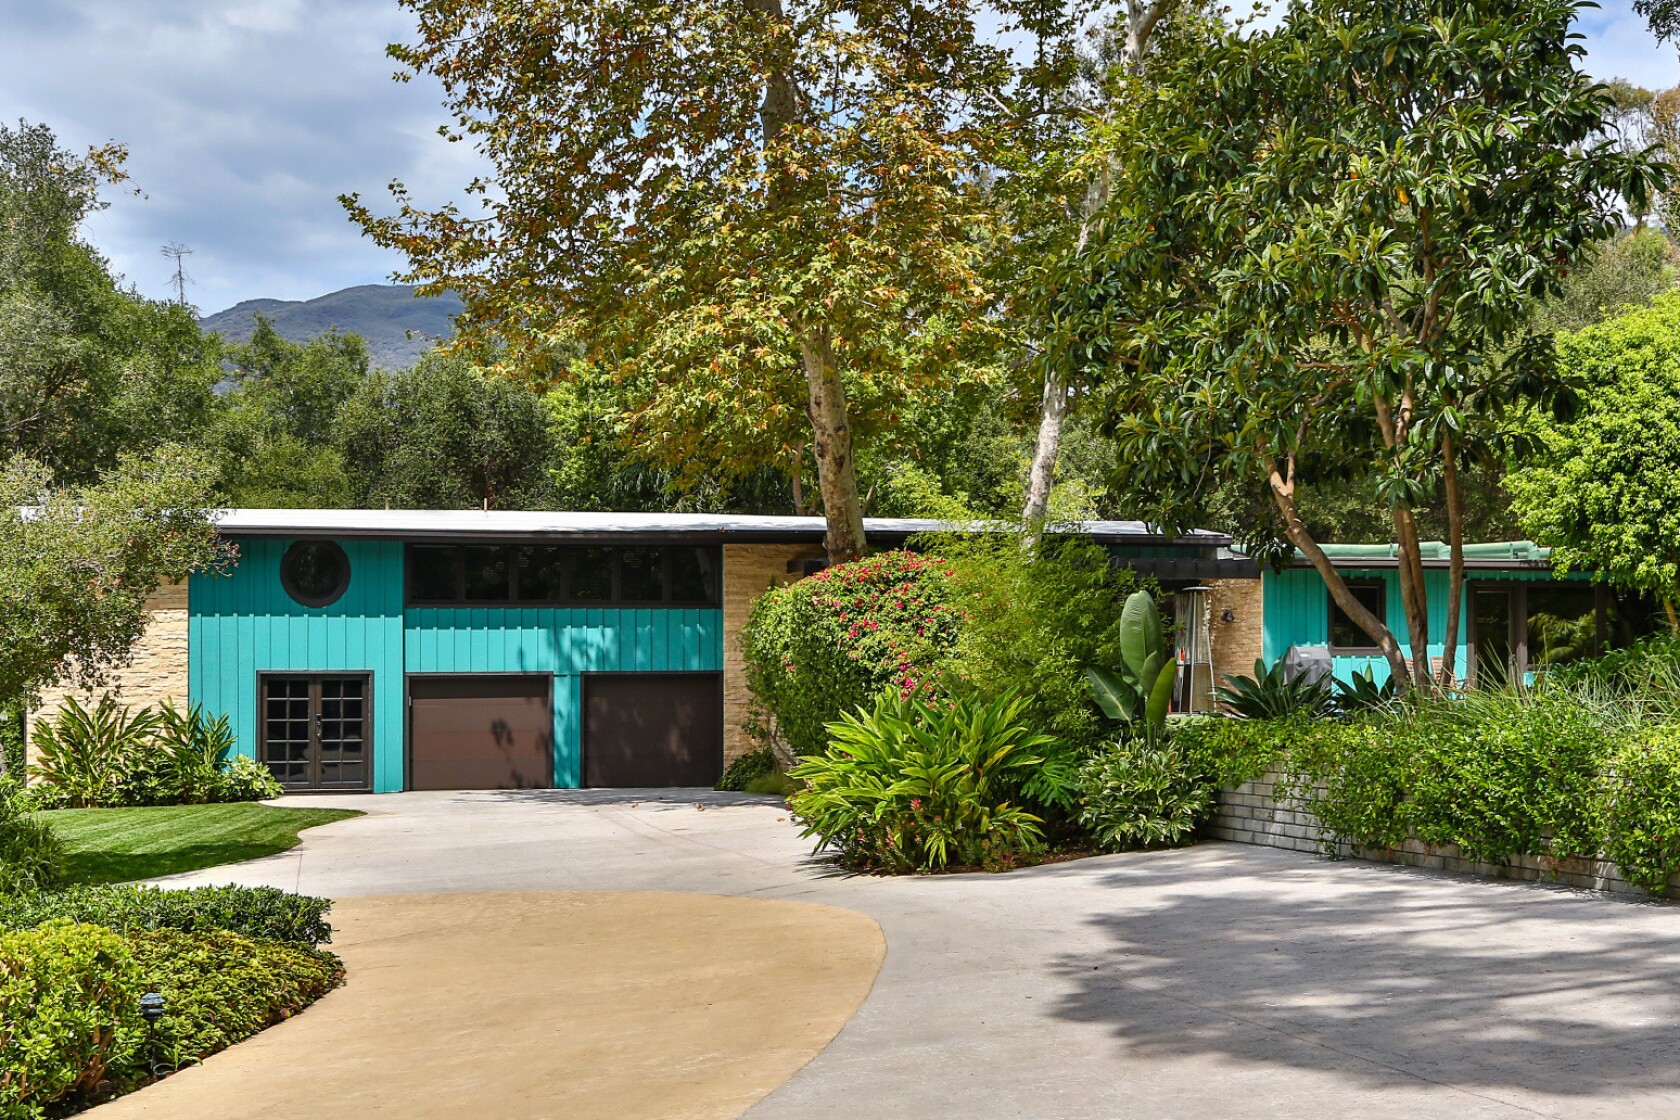 Miley Cyrus Buys A Scenic Retreat In Malibu For About 2 5 Million Los Angeles Times